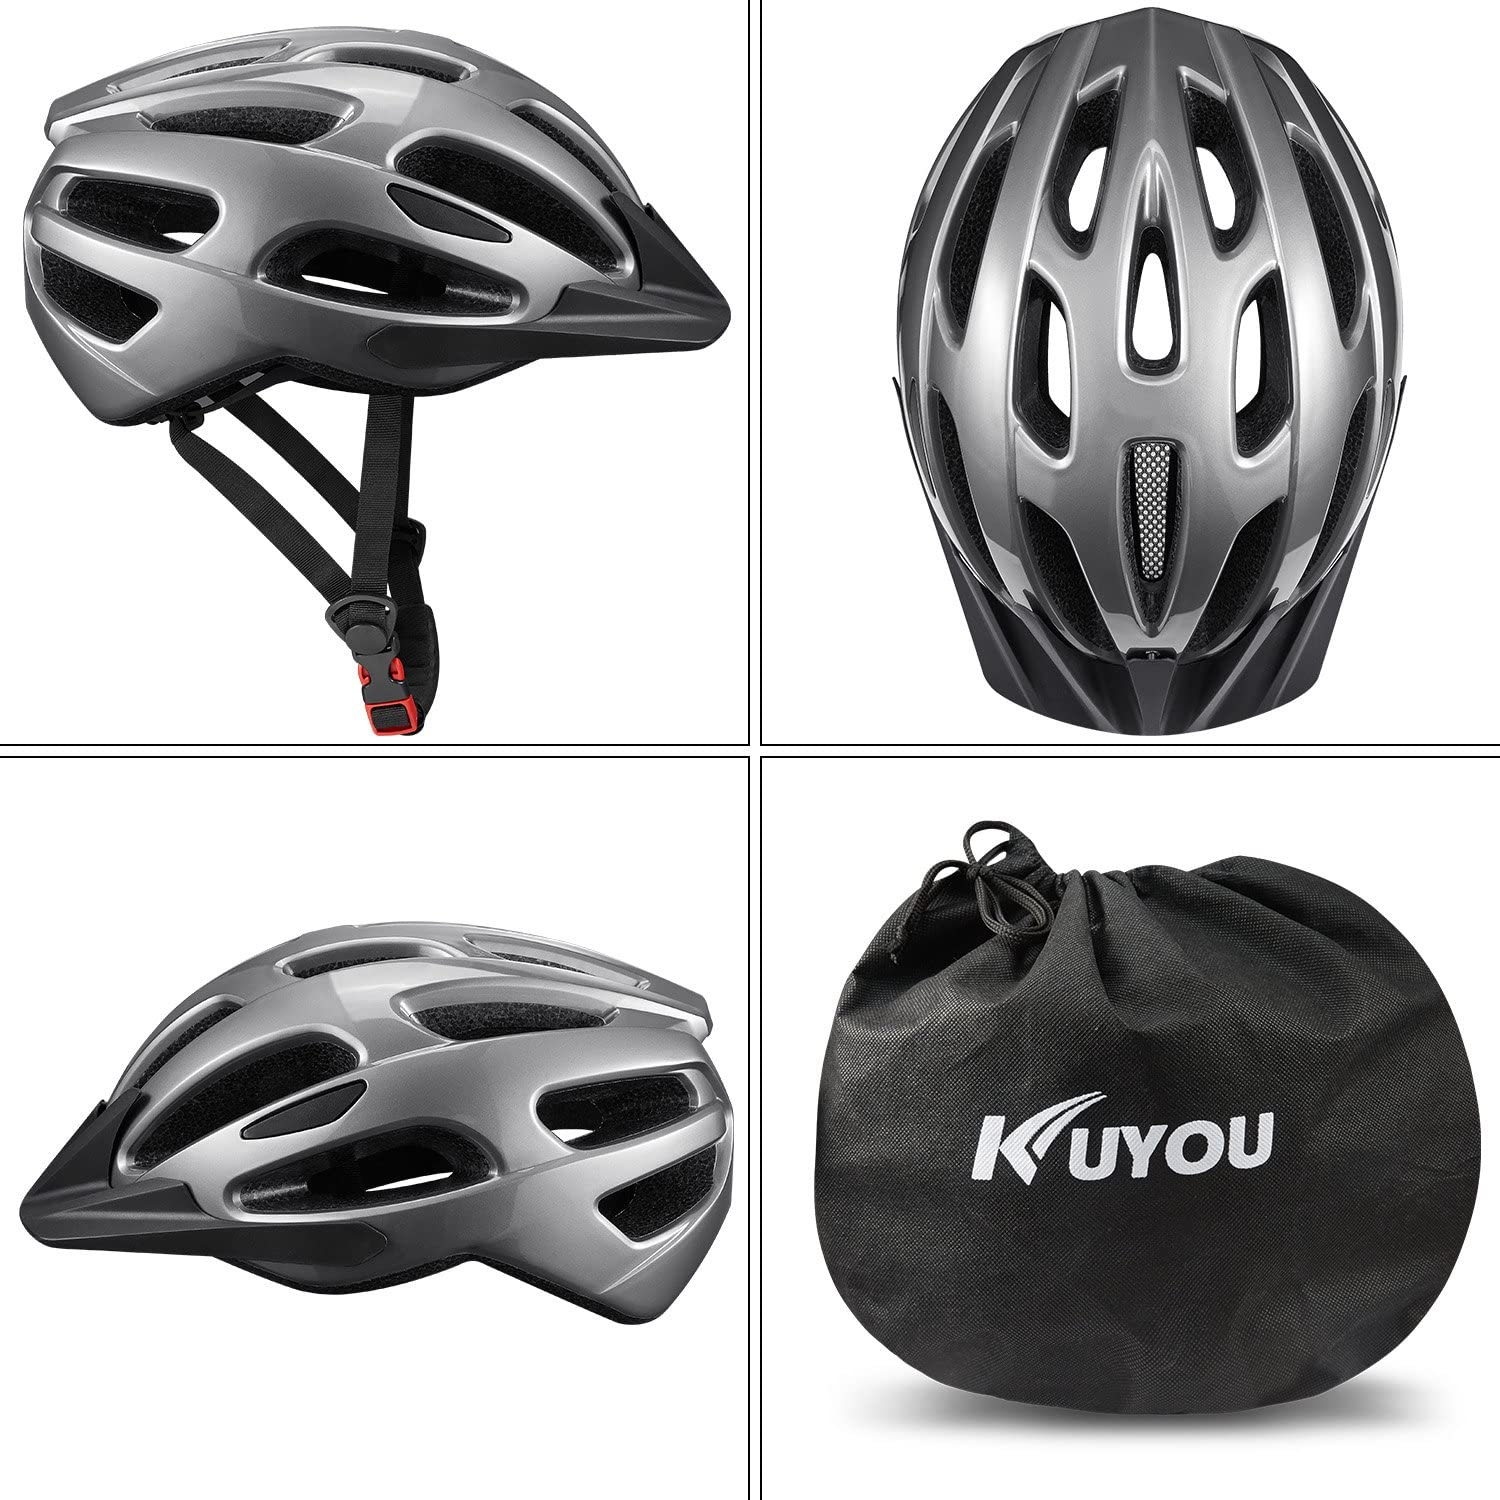 KUYOU Adult Cycling Bike Helmet with Adjustable Ultralight Stable Road Mountain Bike Cycle Helmets for Mens Womens